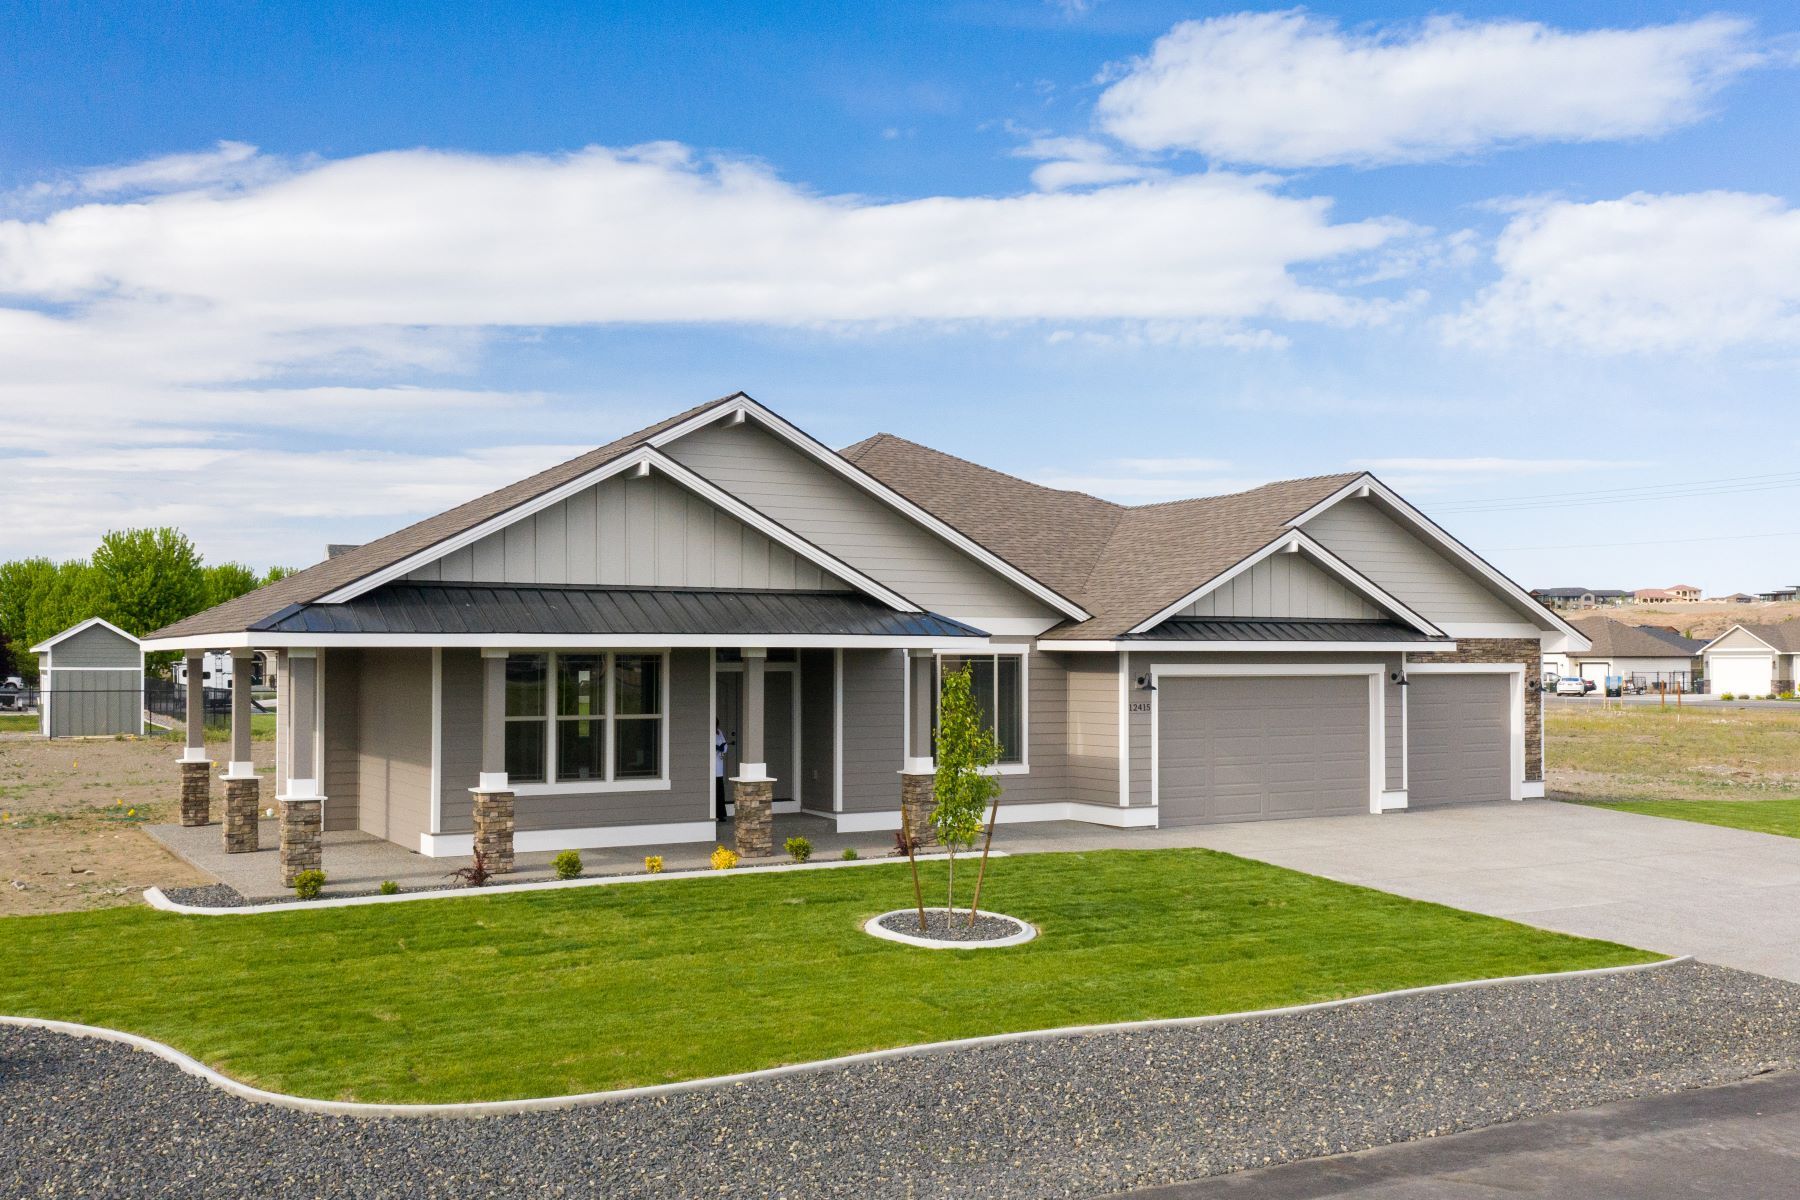 Single Family Homes for Sale at Infinity at Burns Estates 12415 Hunter Pasco, Washington 99301 United States